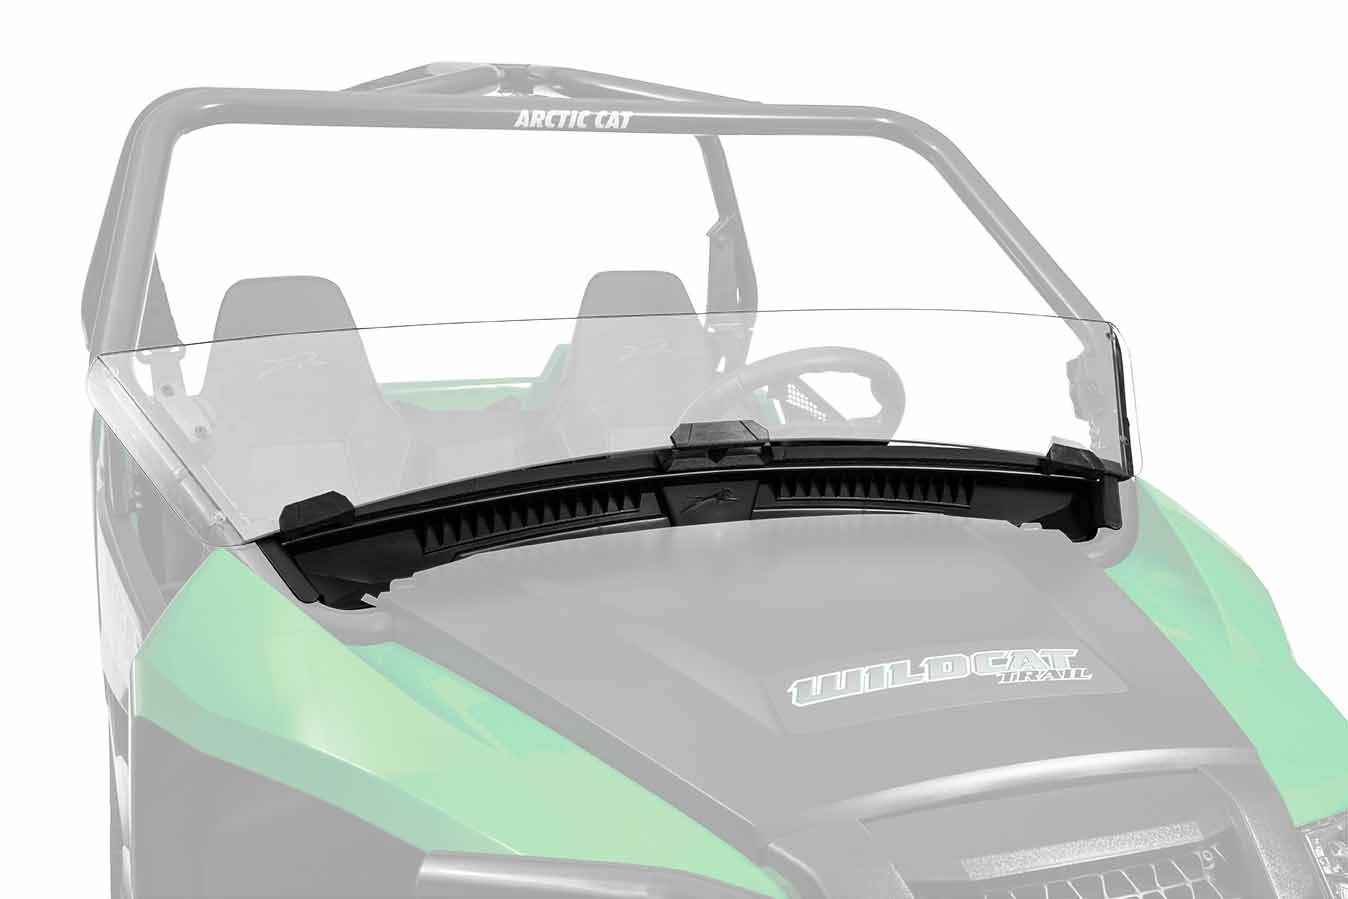 120939 besides New From Arctic Cat Atv Utv For 2016 together with Pulsar 20250 further Half Windshield as well Debroussailleuse Pour Quad Tondoquad 1200. on arctic cat wildcat bumpers